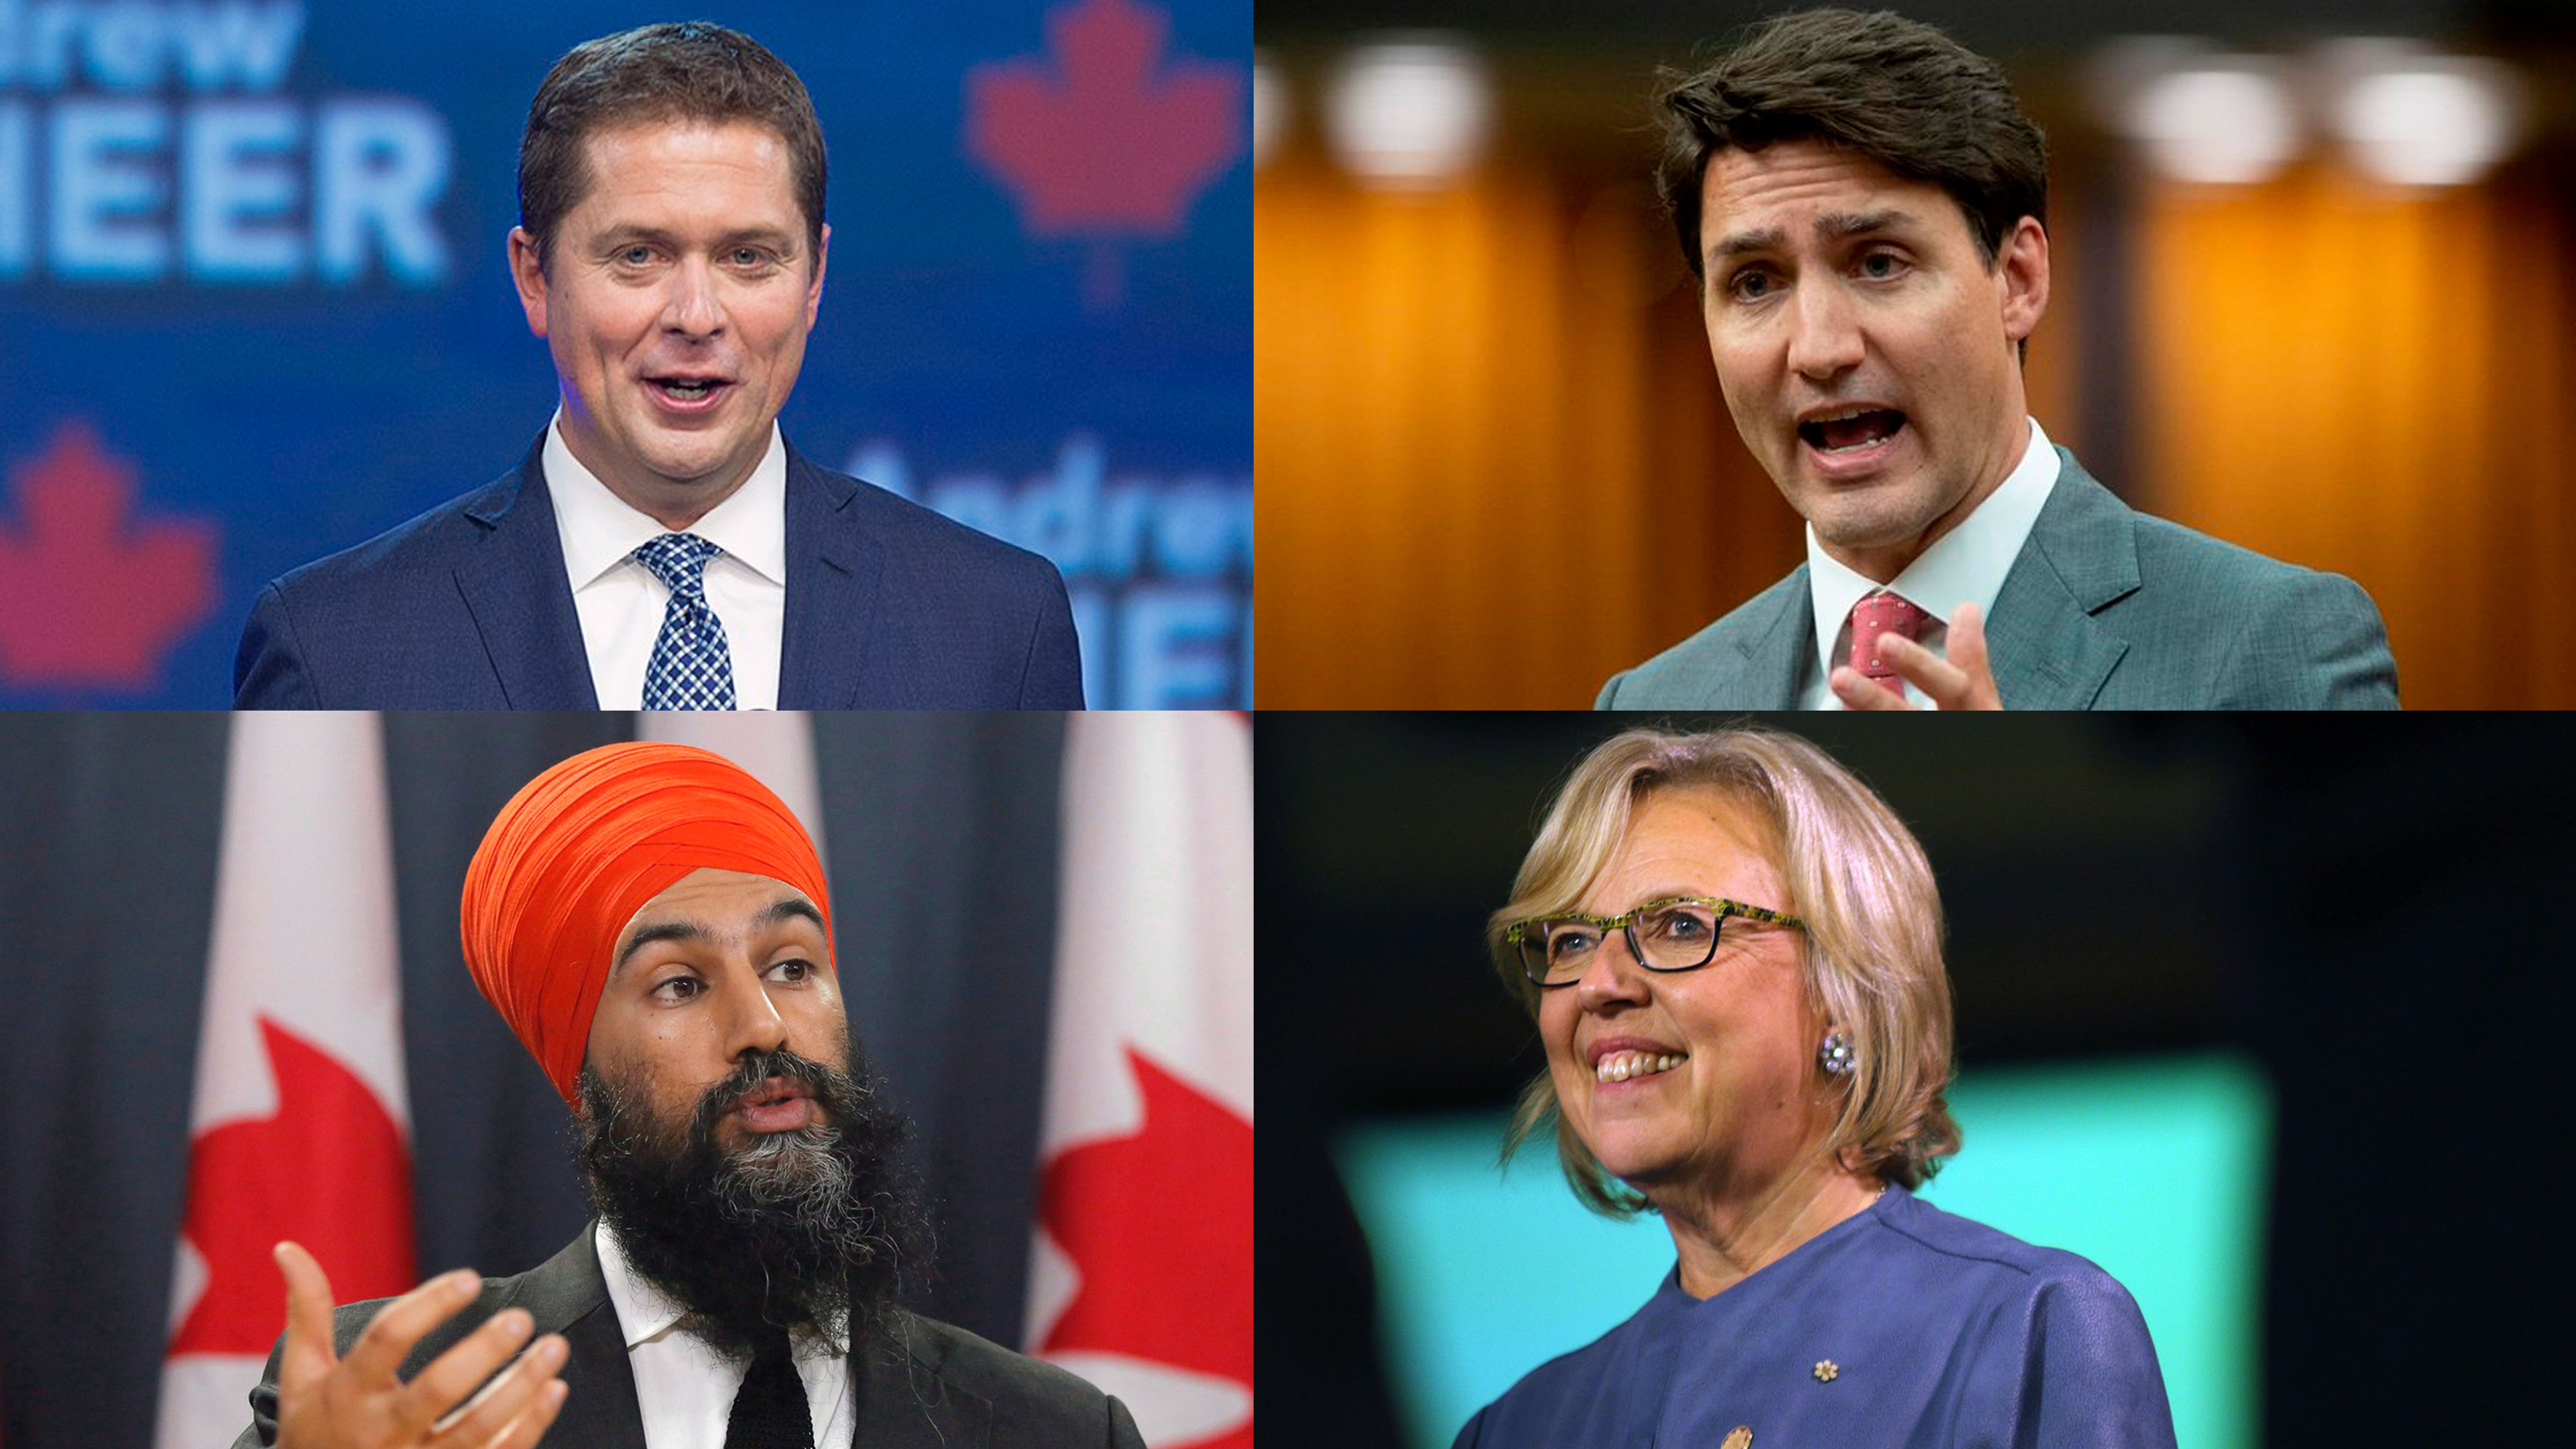 Photo-ops, political fights: Party leaders deal with tough